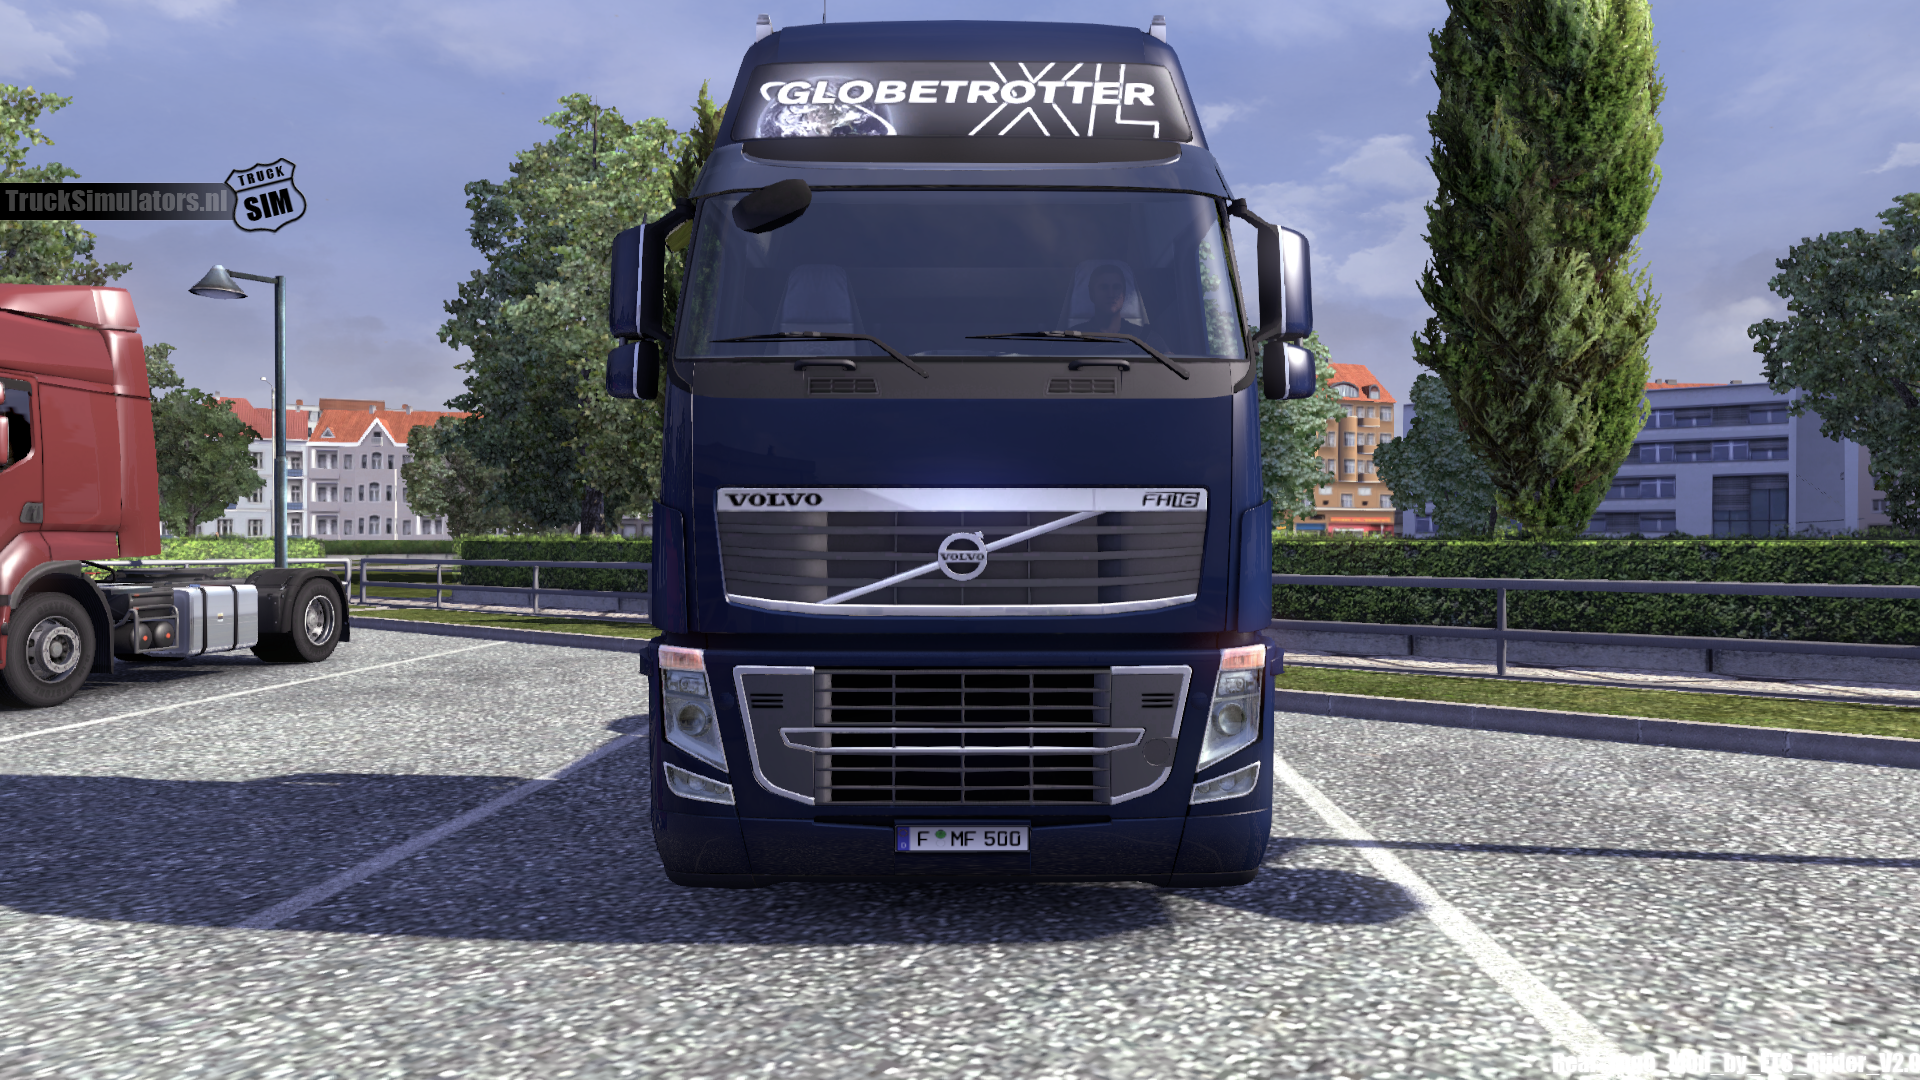 real logo mod by ets rijder v2 0 trucksimulators forum. Black Bedroom Furniture Sets. Home Design Ideas